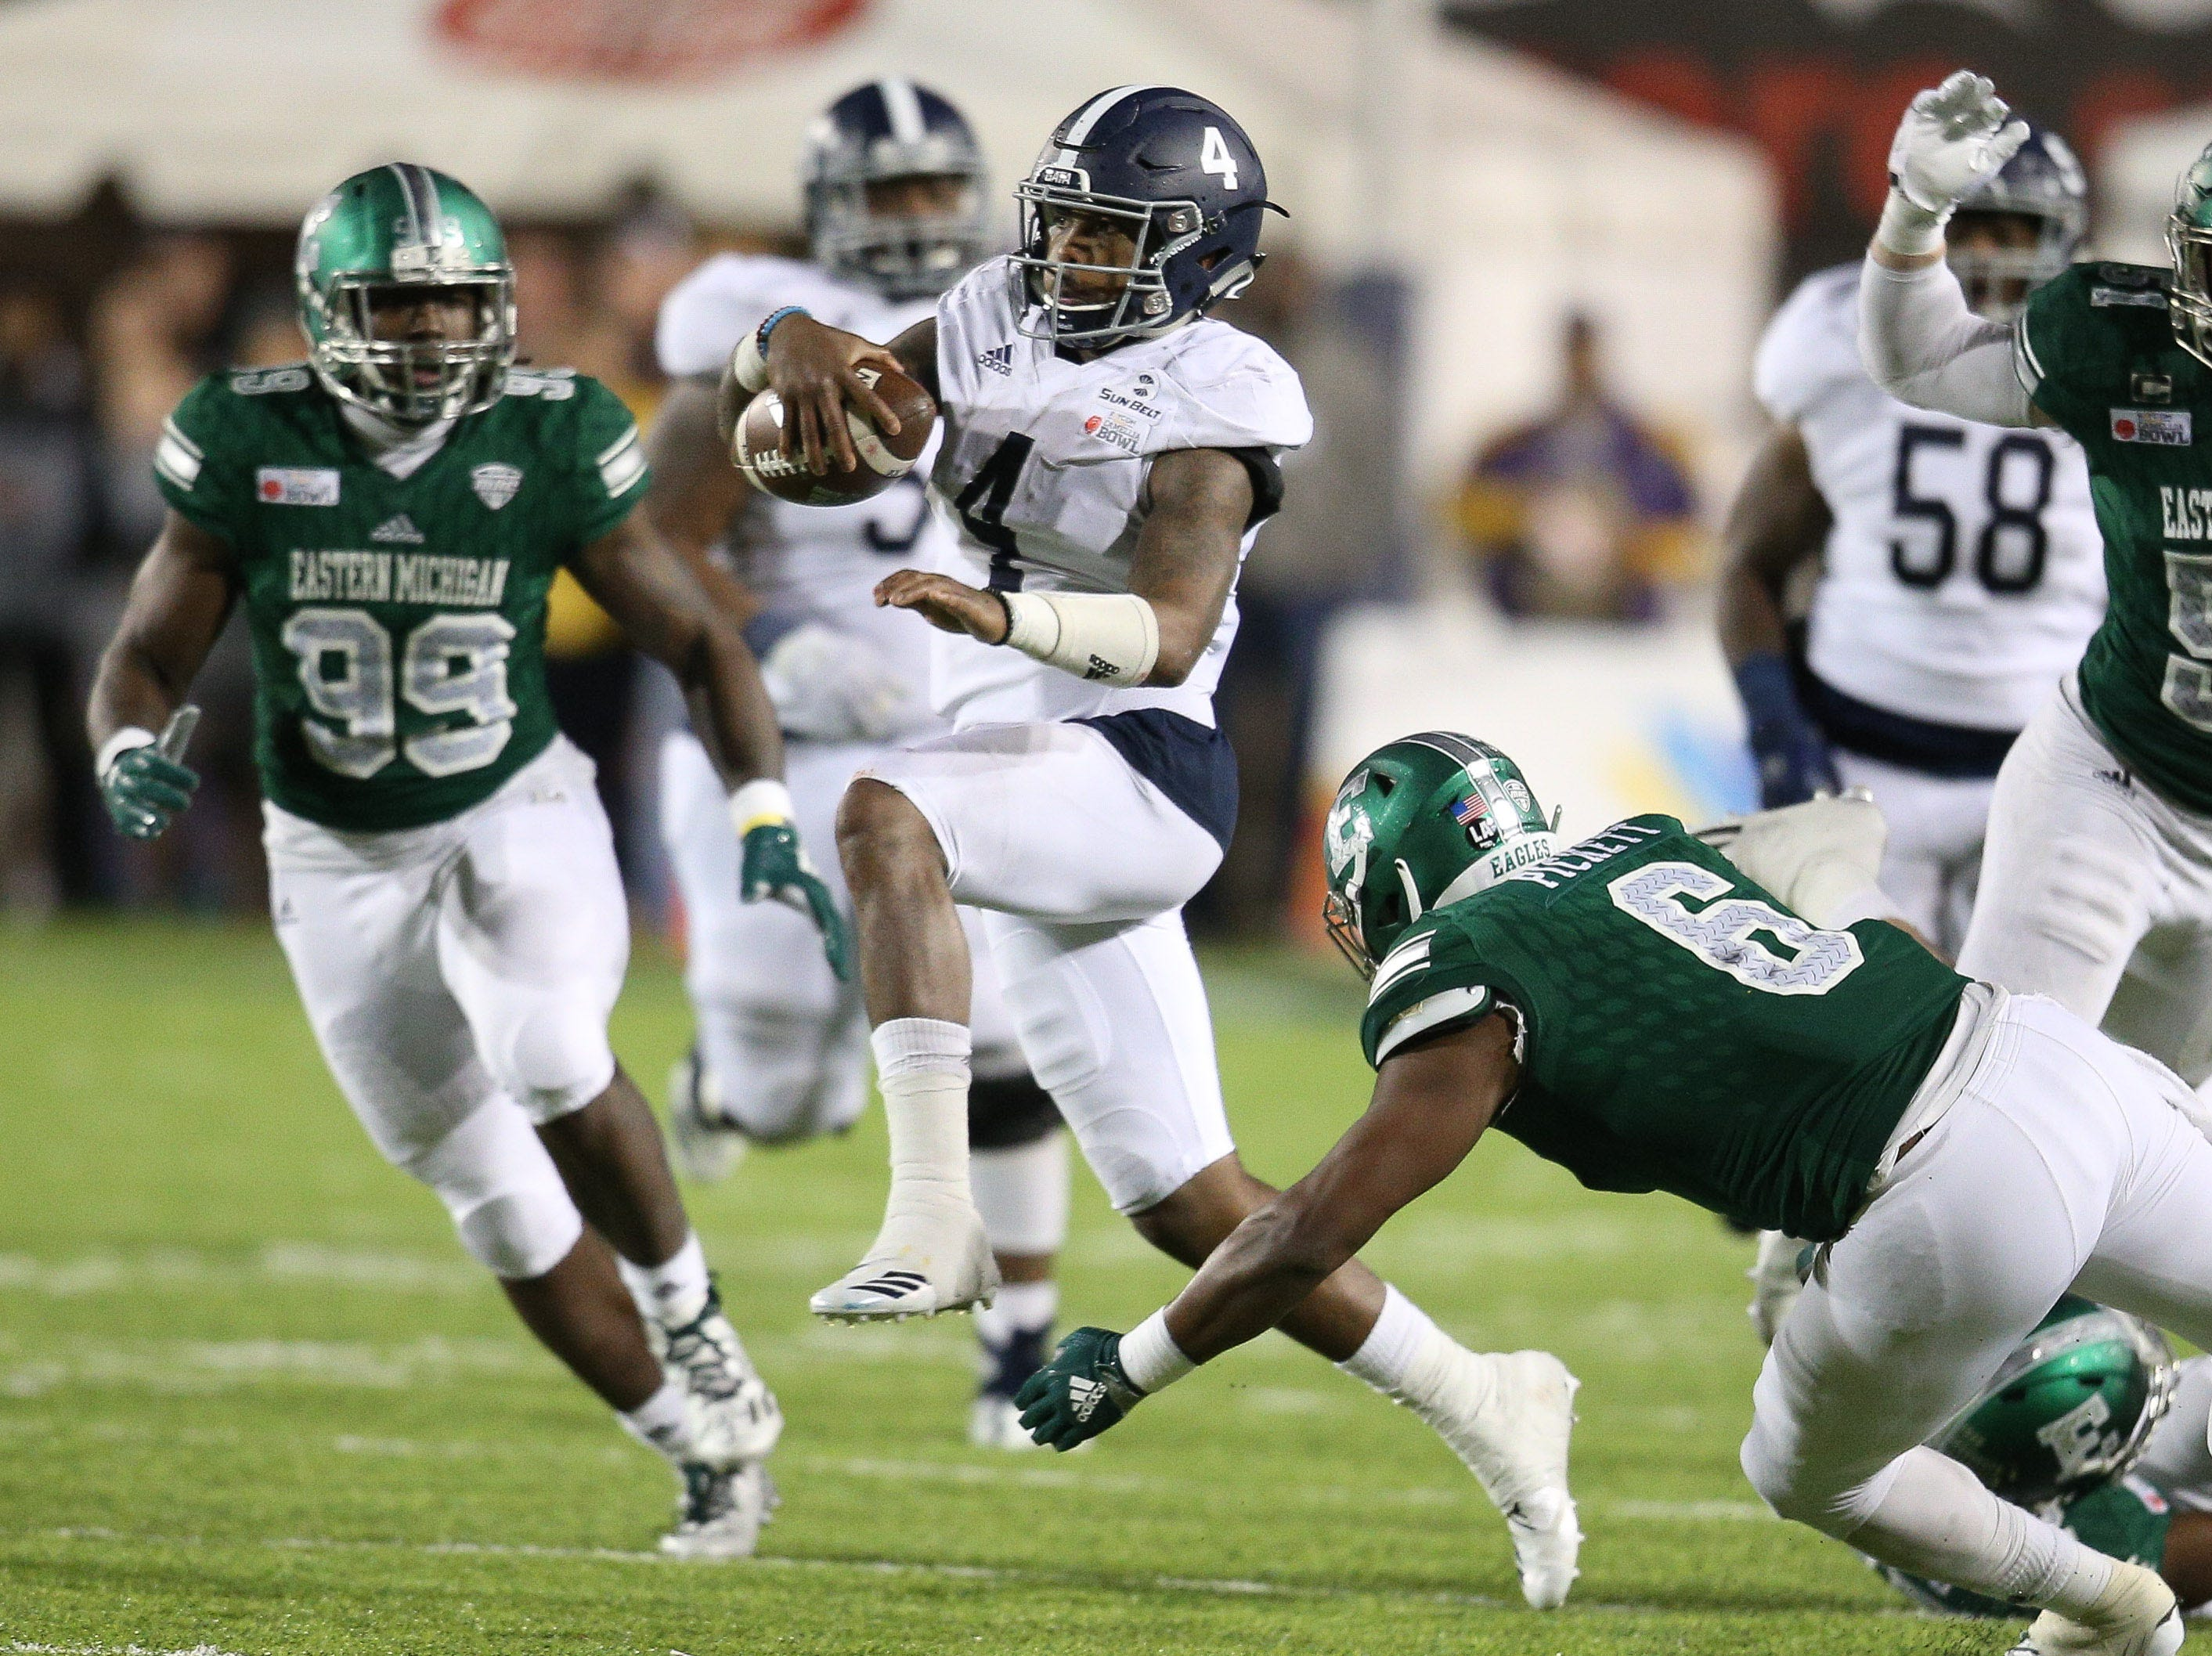 Georgia Southern Eagles quarterback Shai Werts (4) carries the ball for a first down late in the game against Eastern Michigan Eagles in the Camellia Bowl.